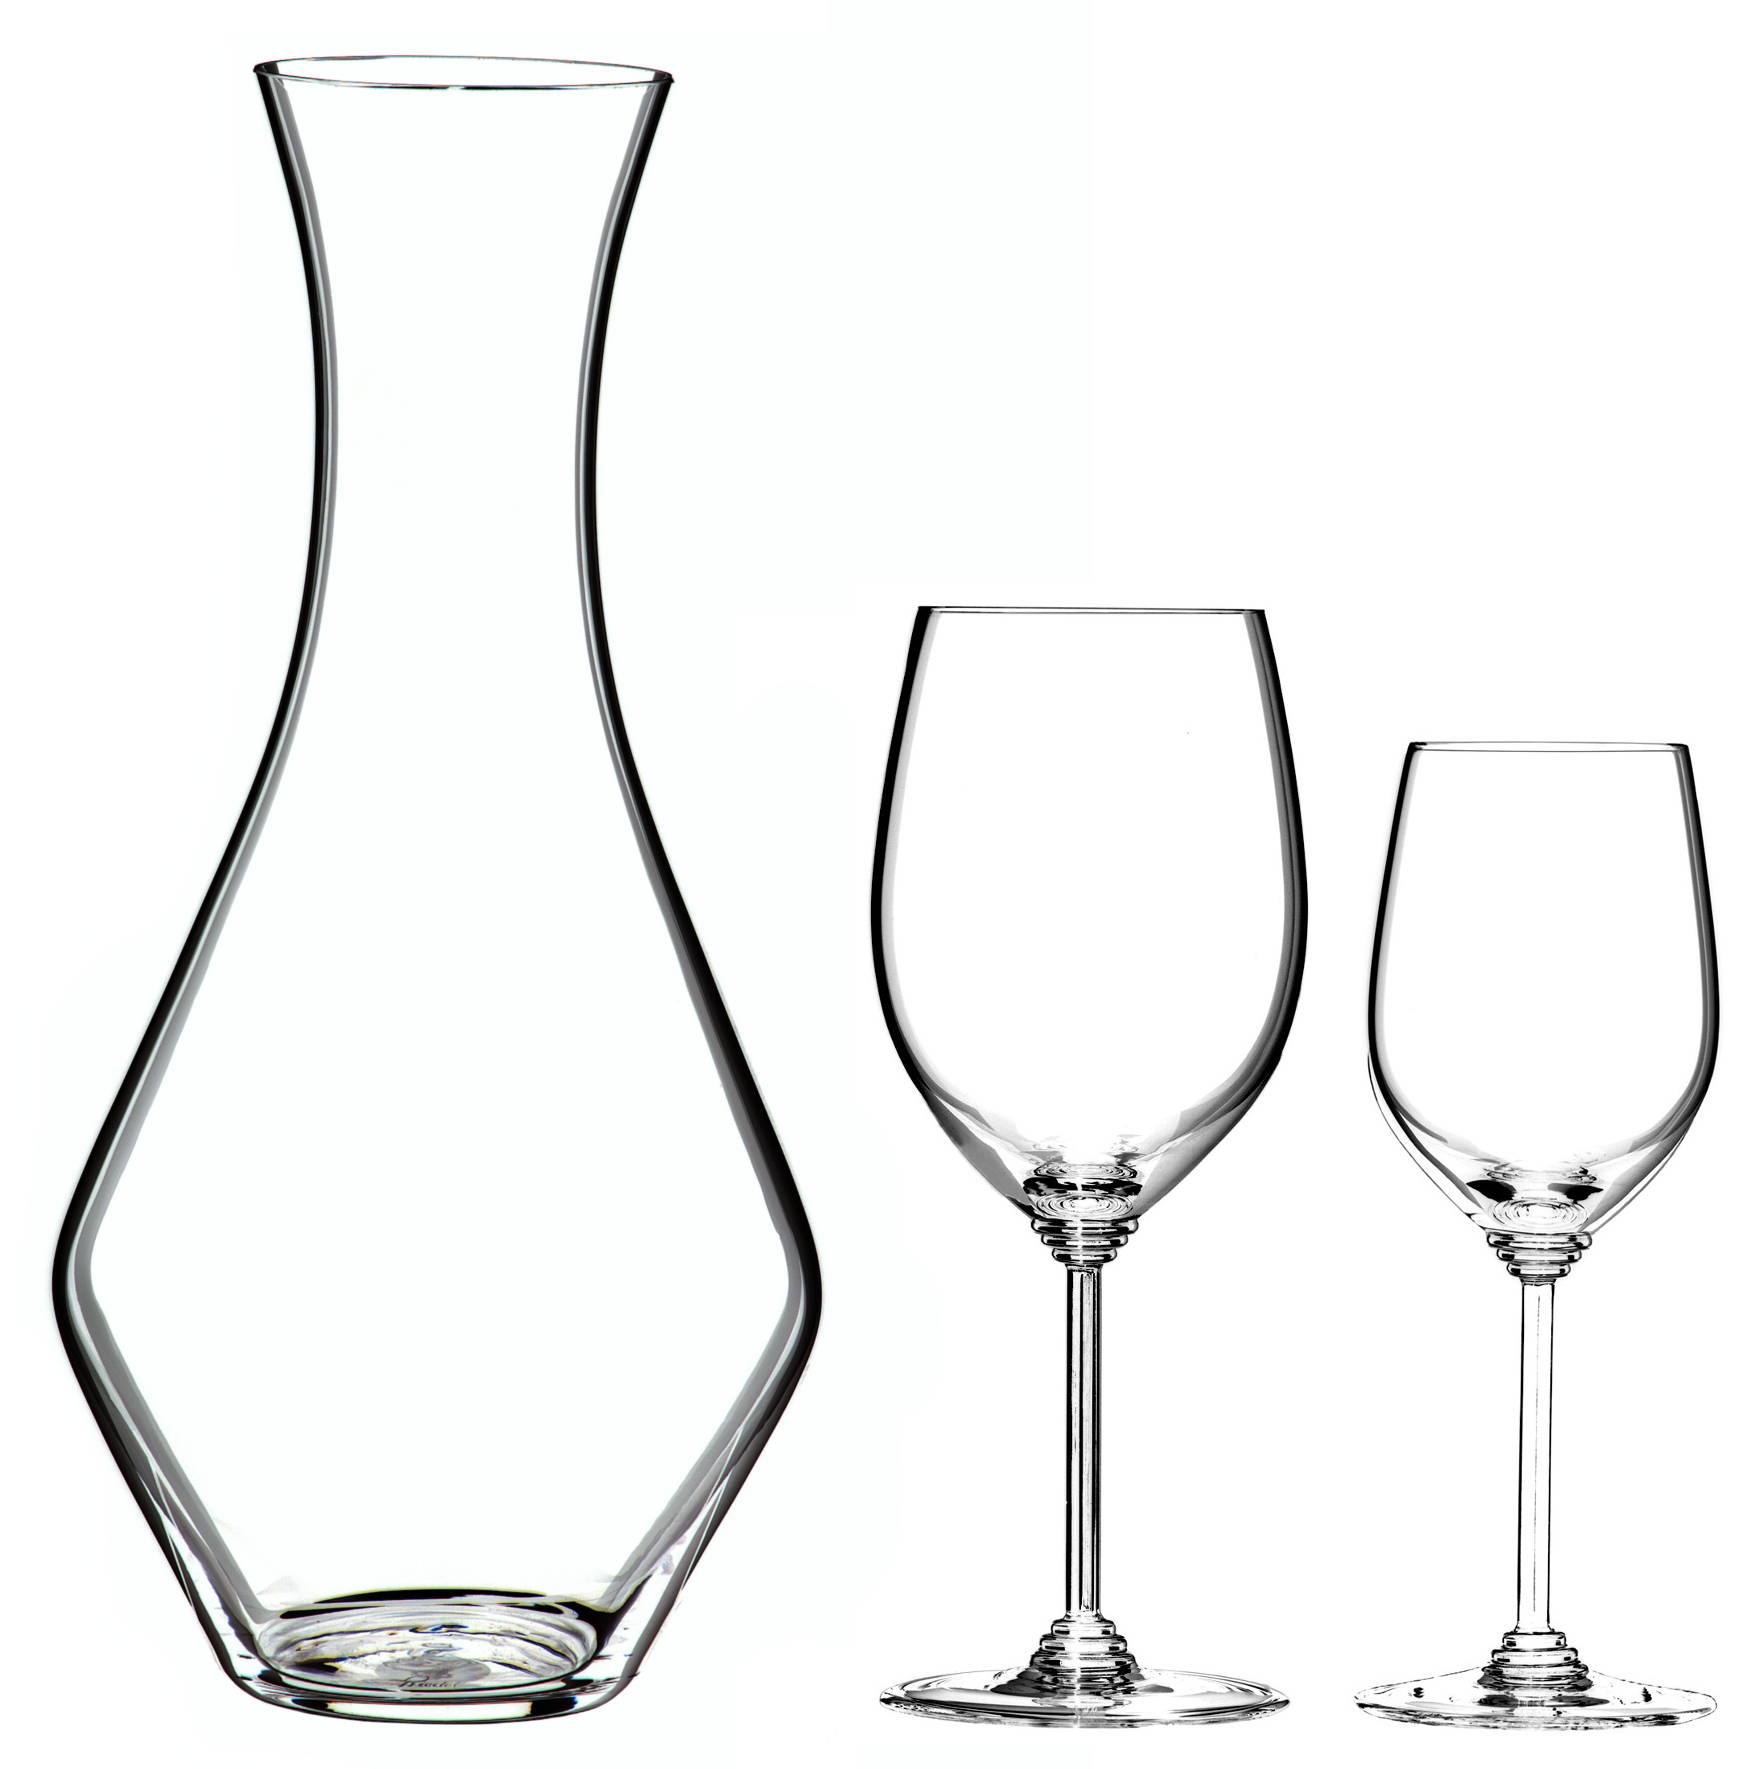 Riedel Wine Series 5 Piece Cabernet and Chardonnay Wine Glass Gift Set With Merlot Decanter